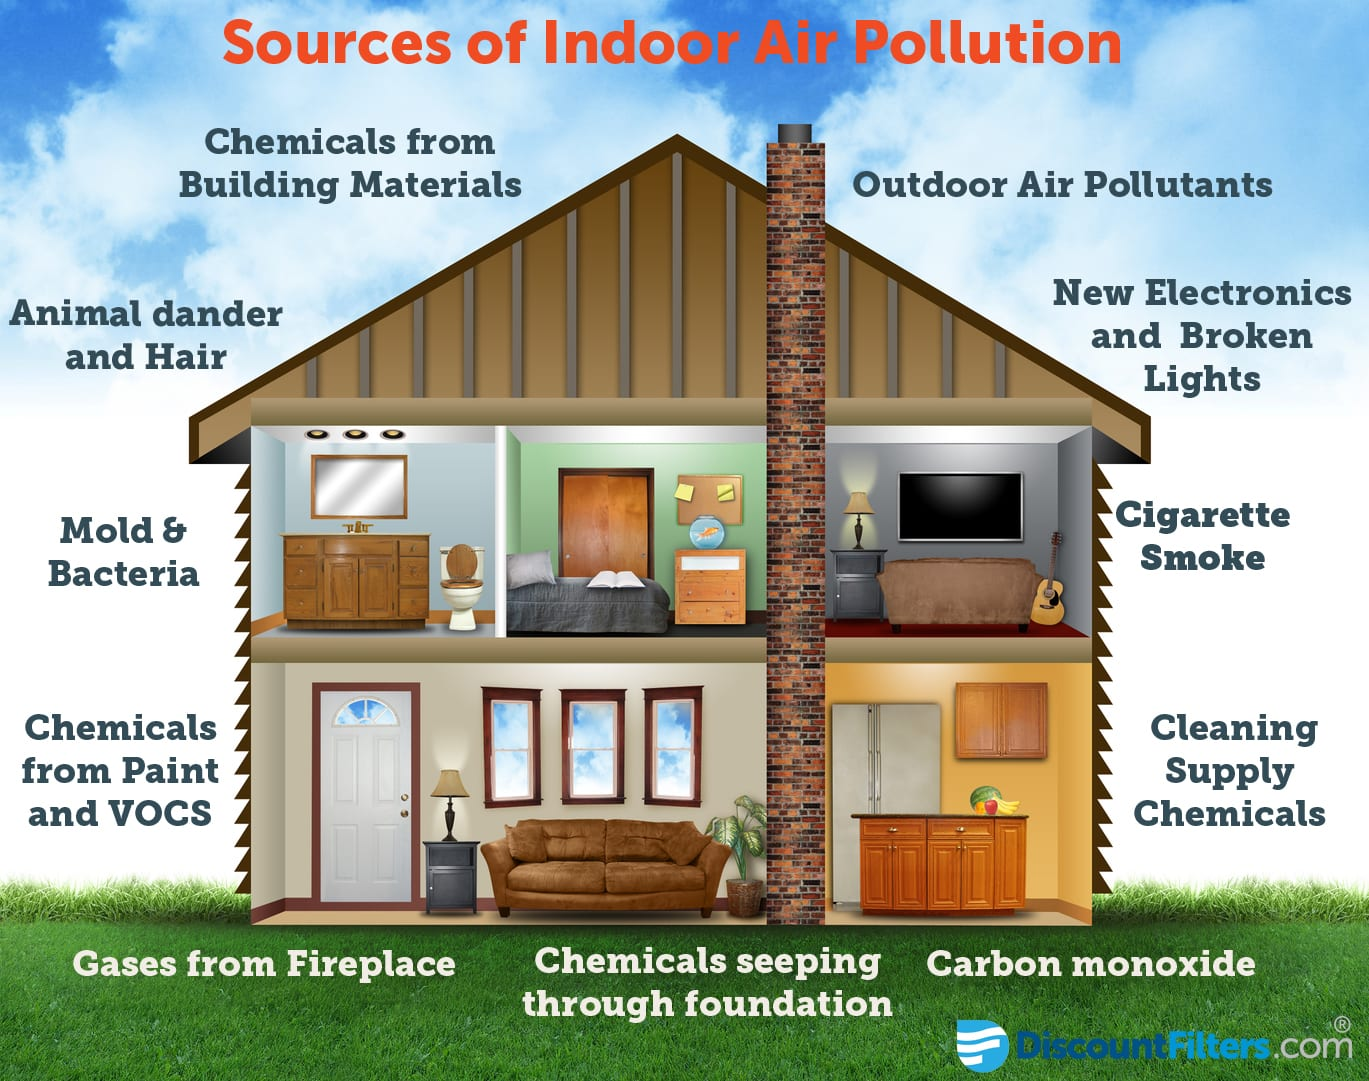 Sources of Indoor Air Quality Pollution